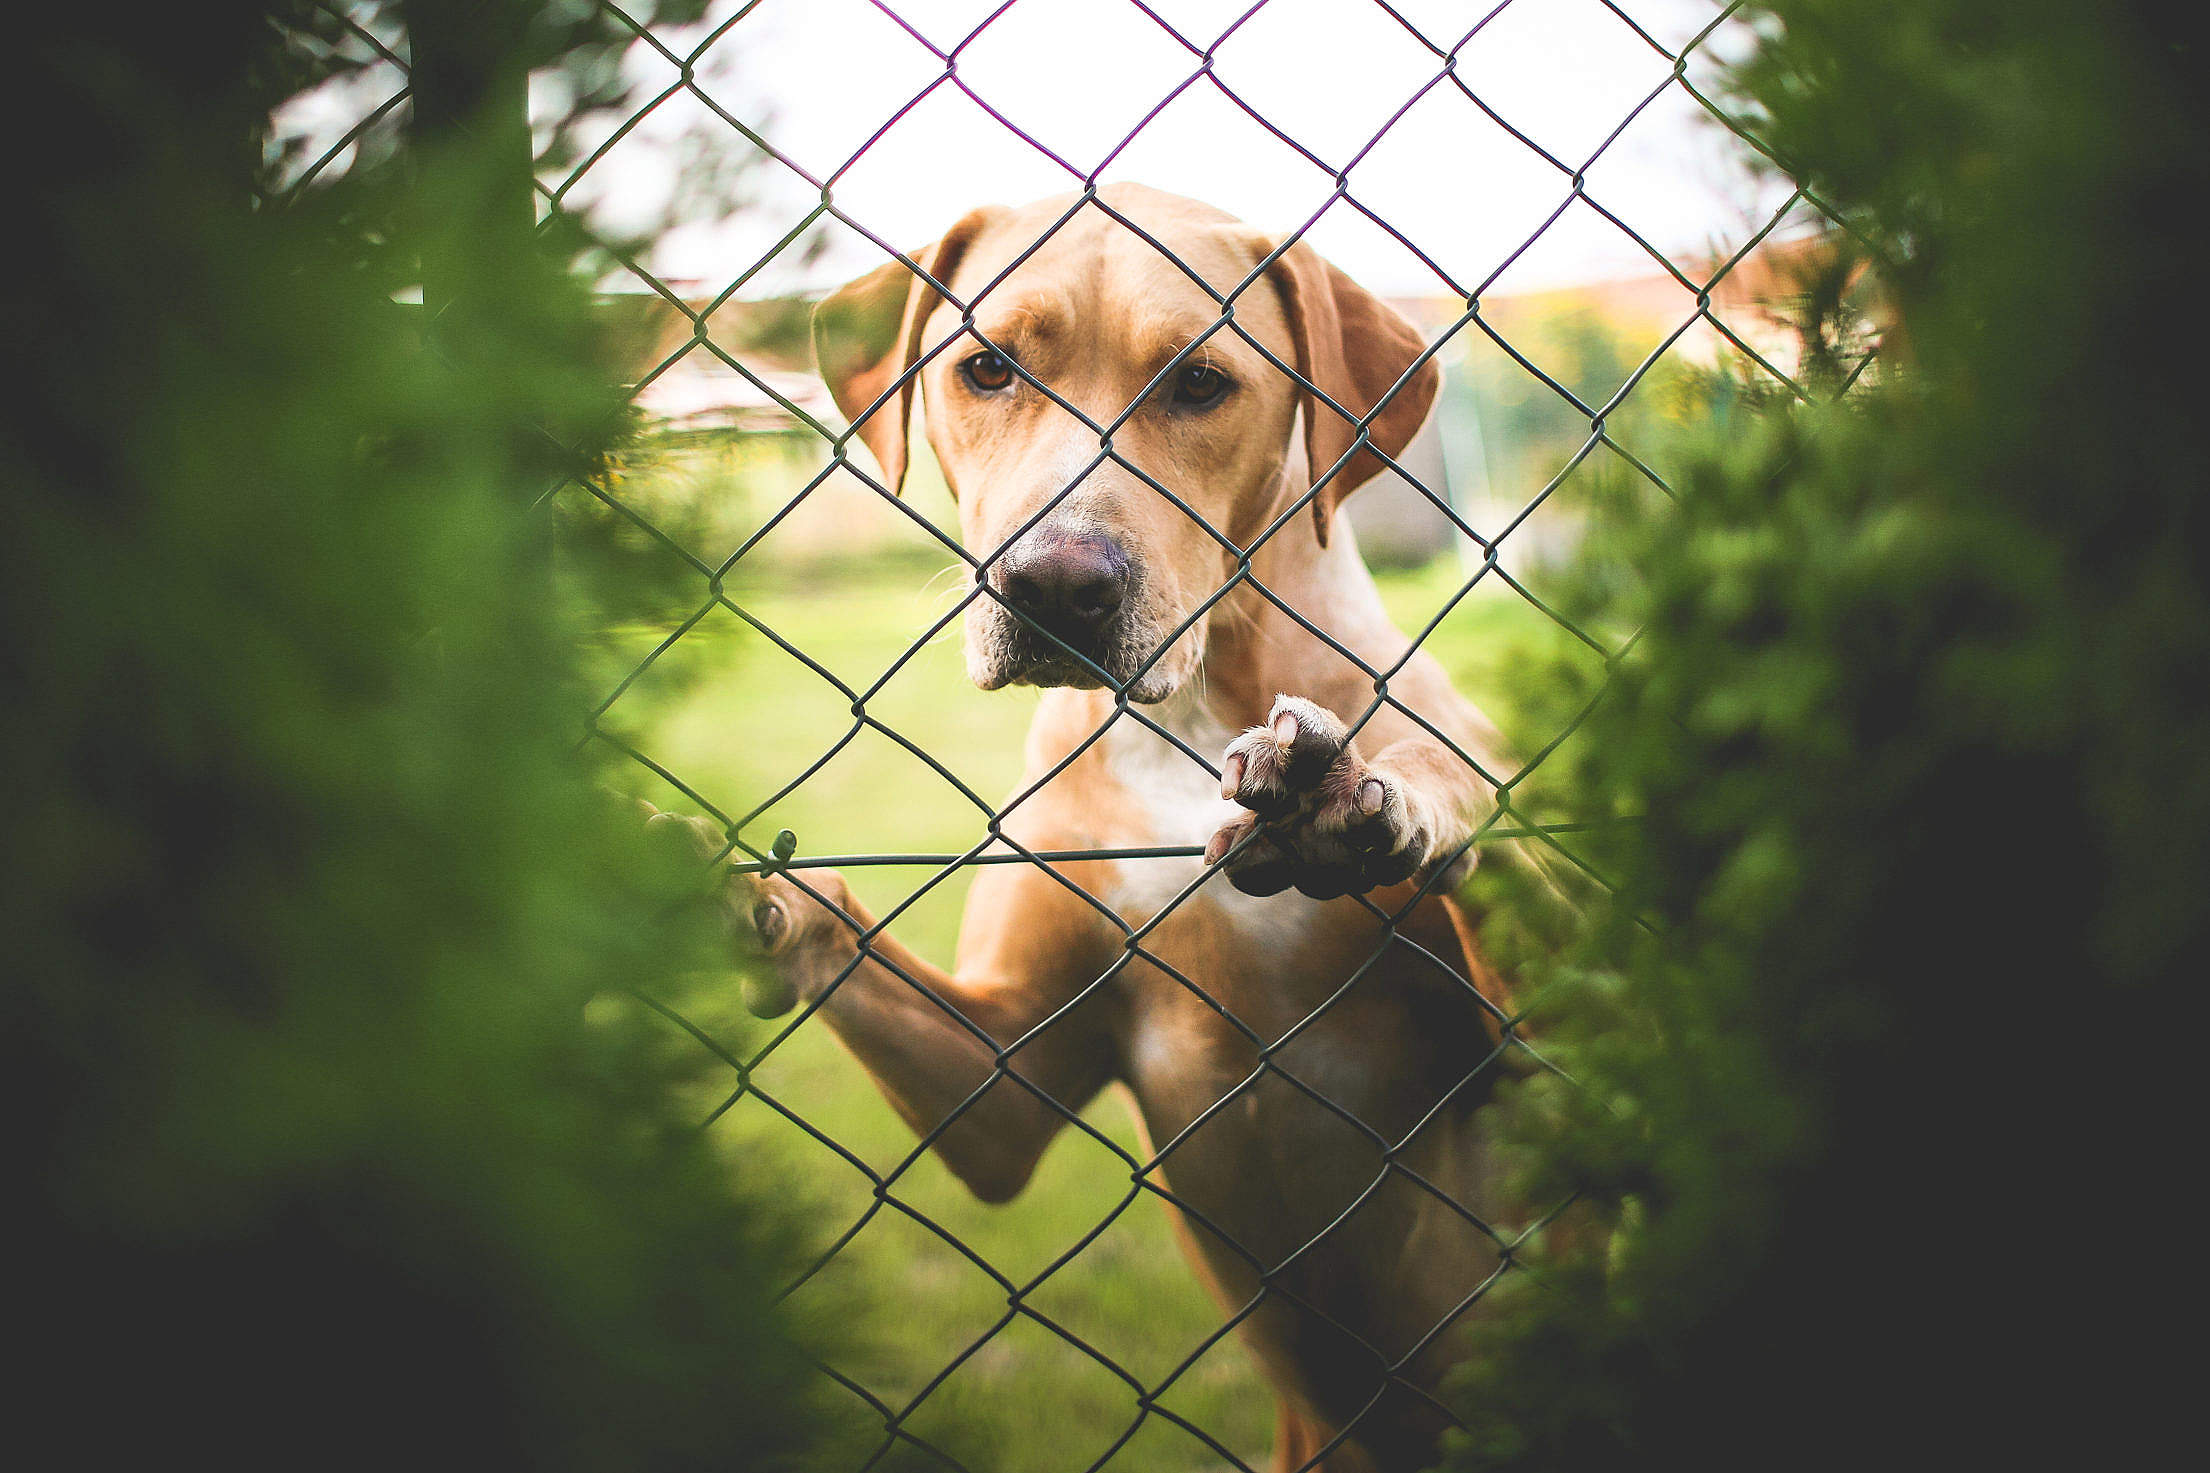 Golden Retriever Behind The Fence Free Stock Photo